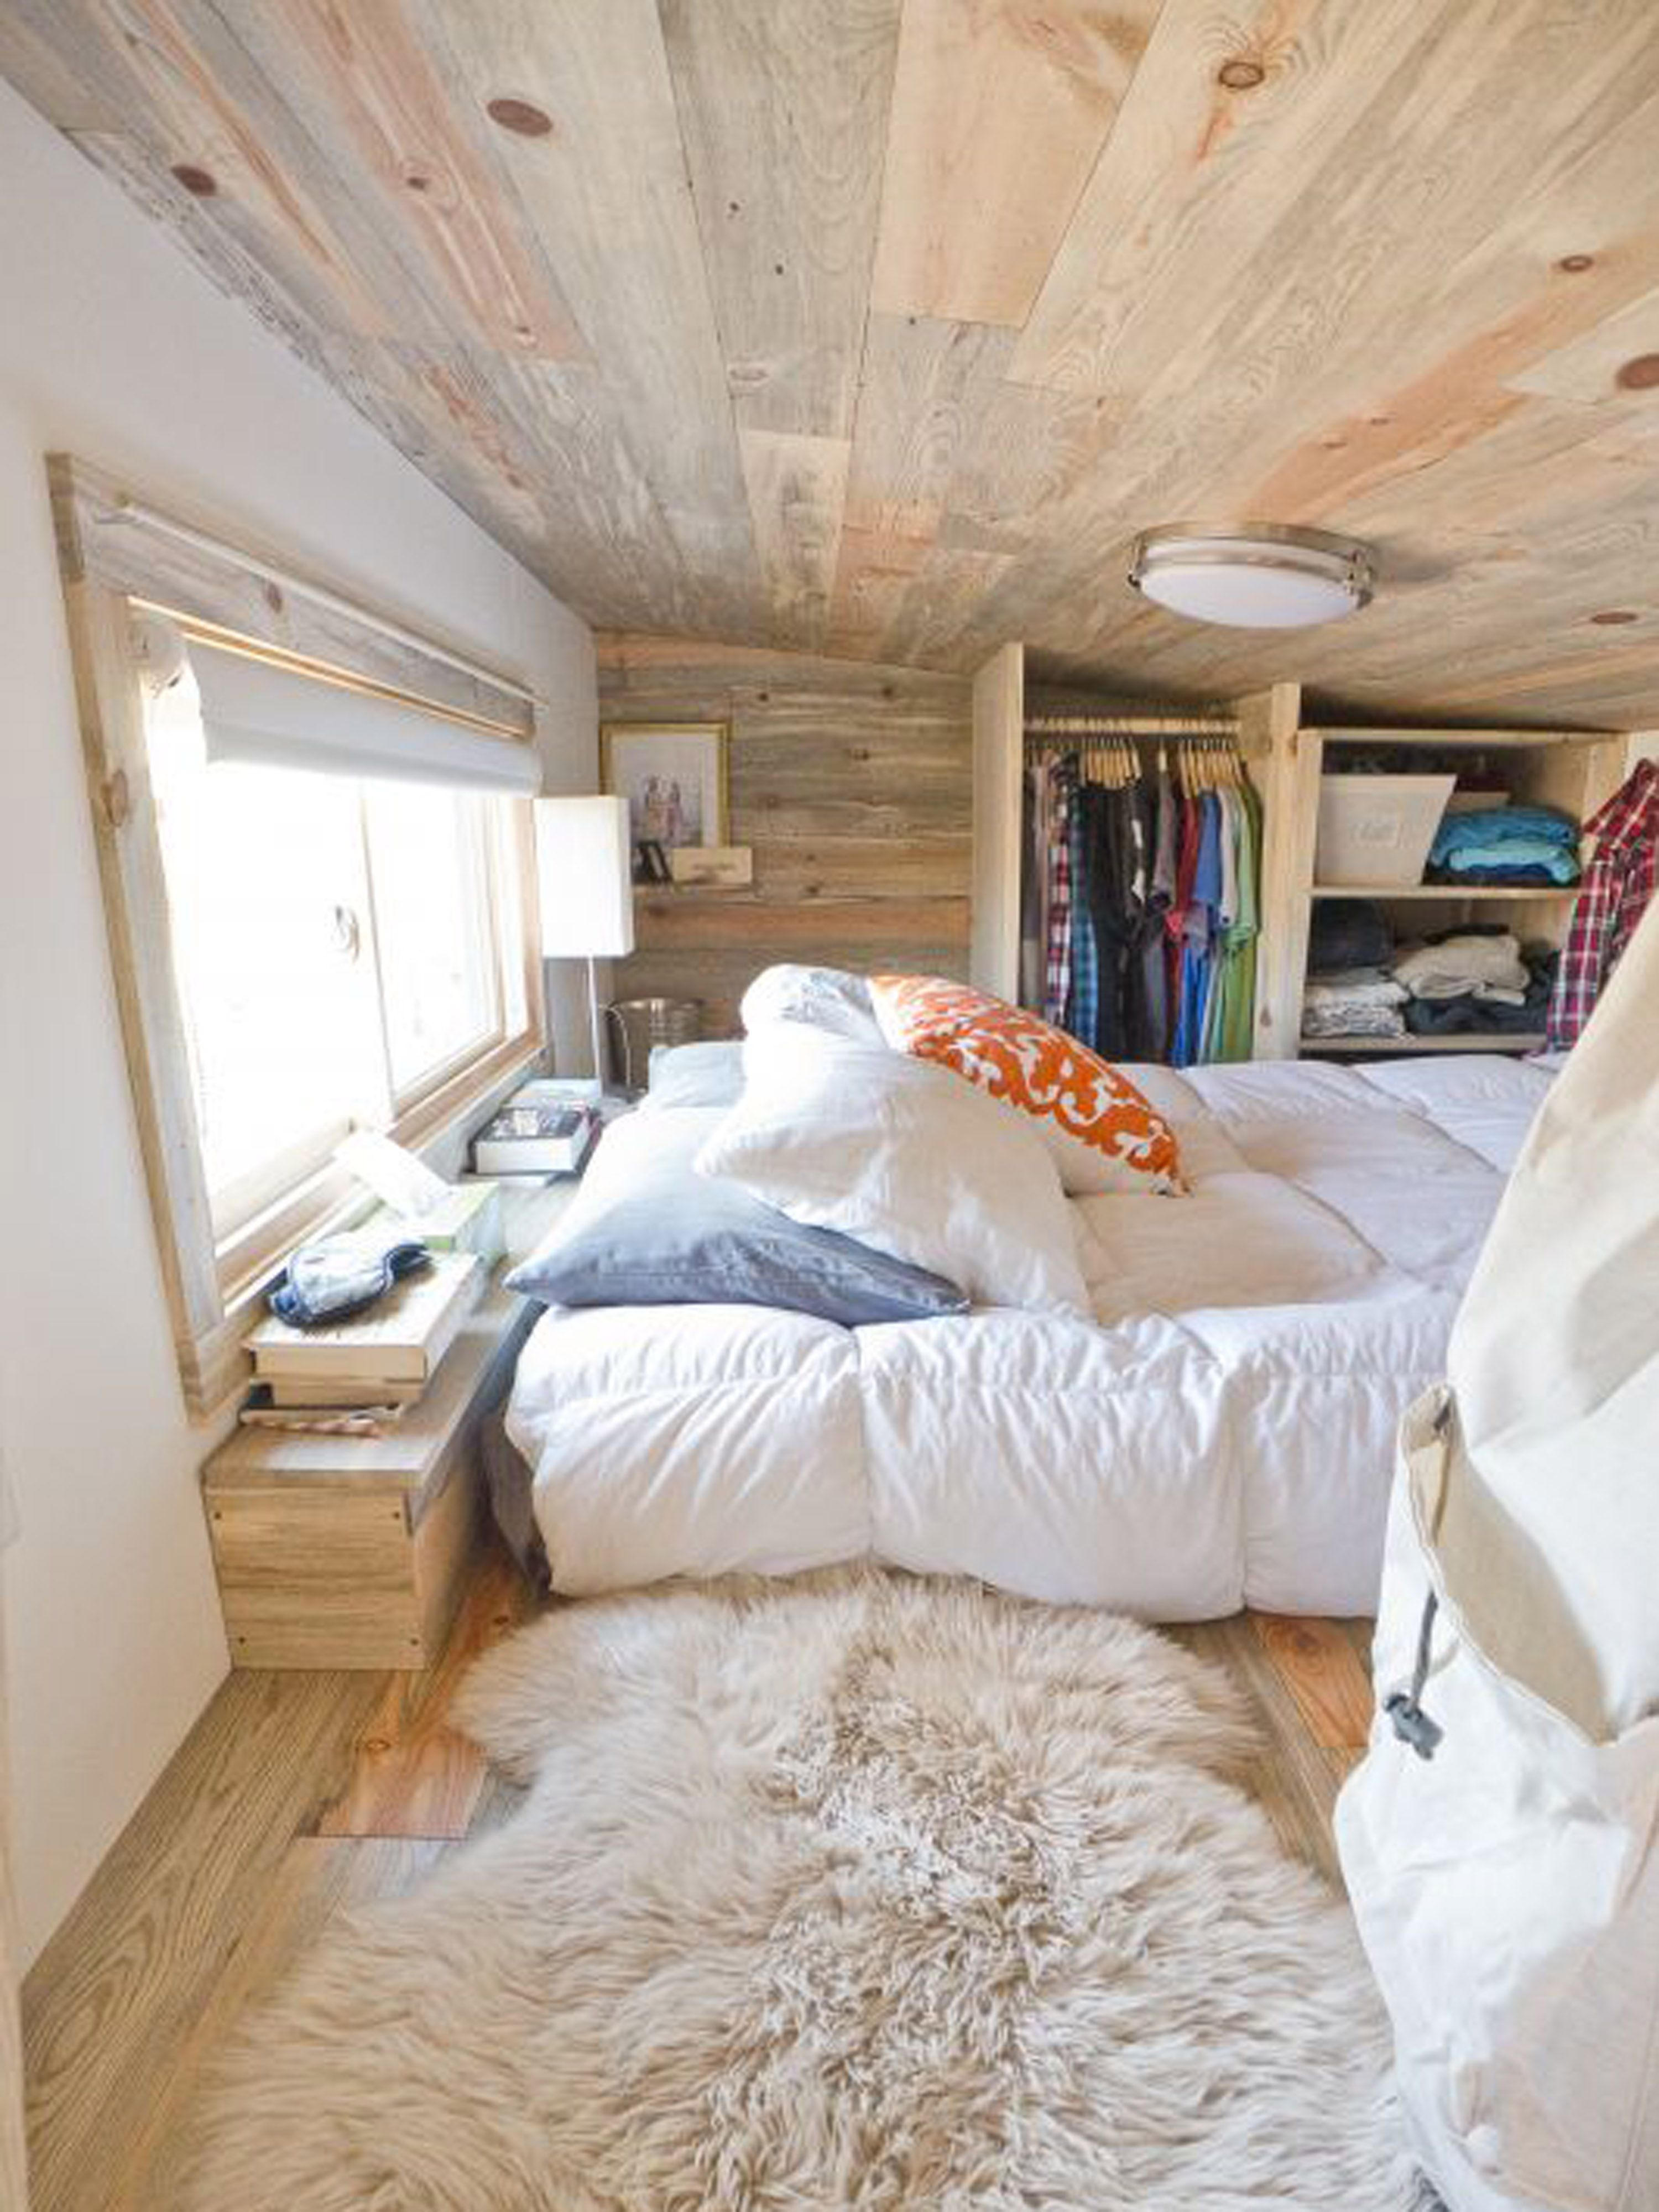 12 Tiny Houses That Will Fulfill Your Getting Away From It All Fantasies With Images Home Bedroom Tiny House Living Small Bedroom